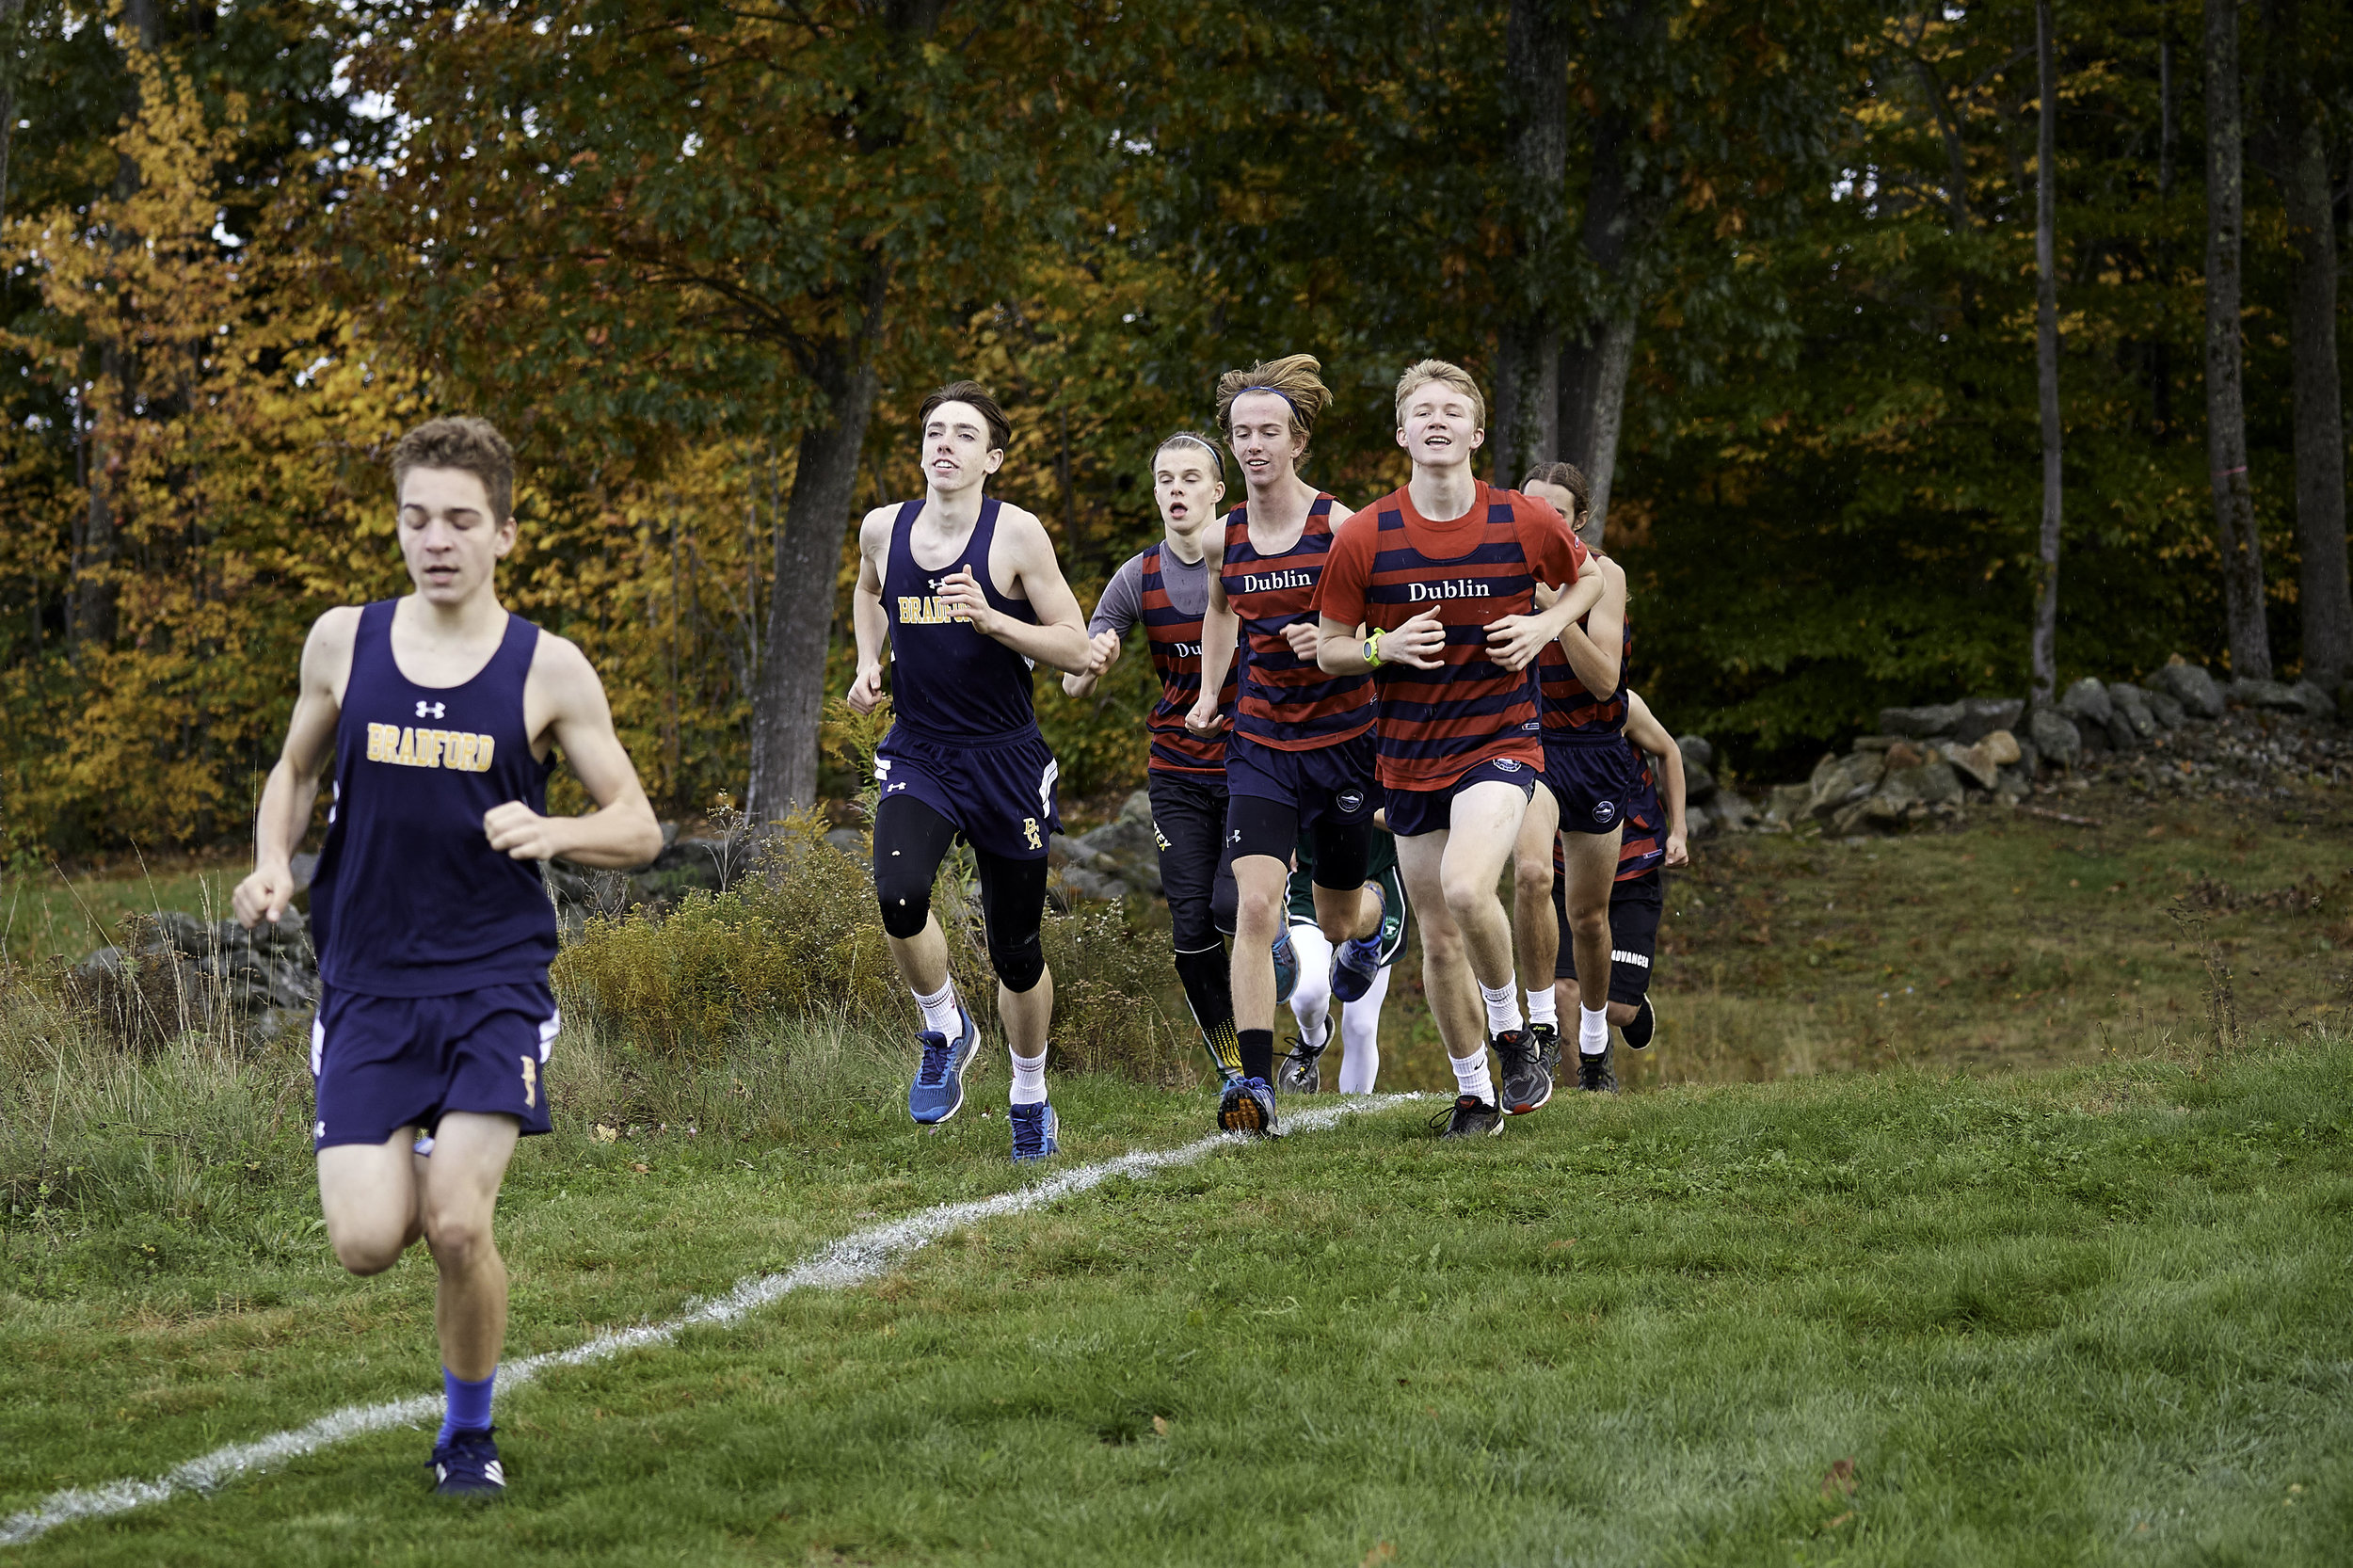 Dublion Invitational - October 12, 2018 - 136447.jpg